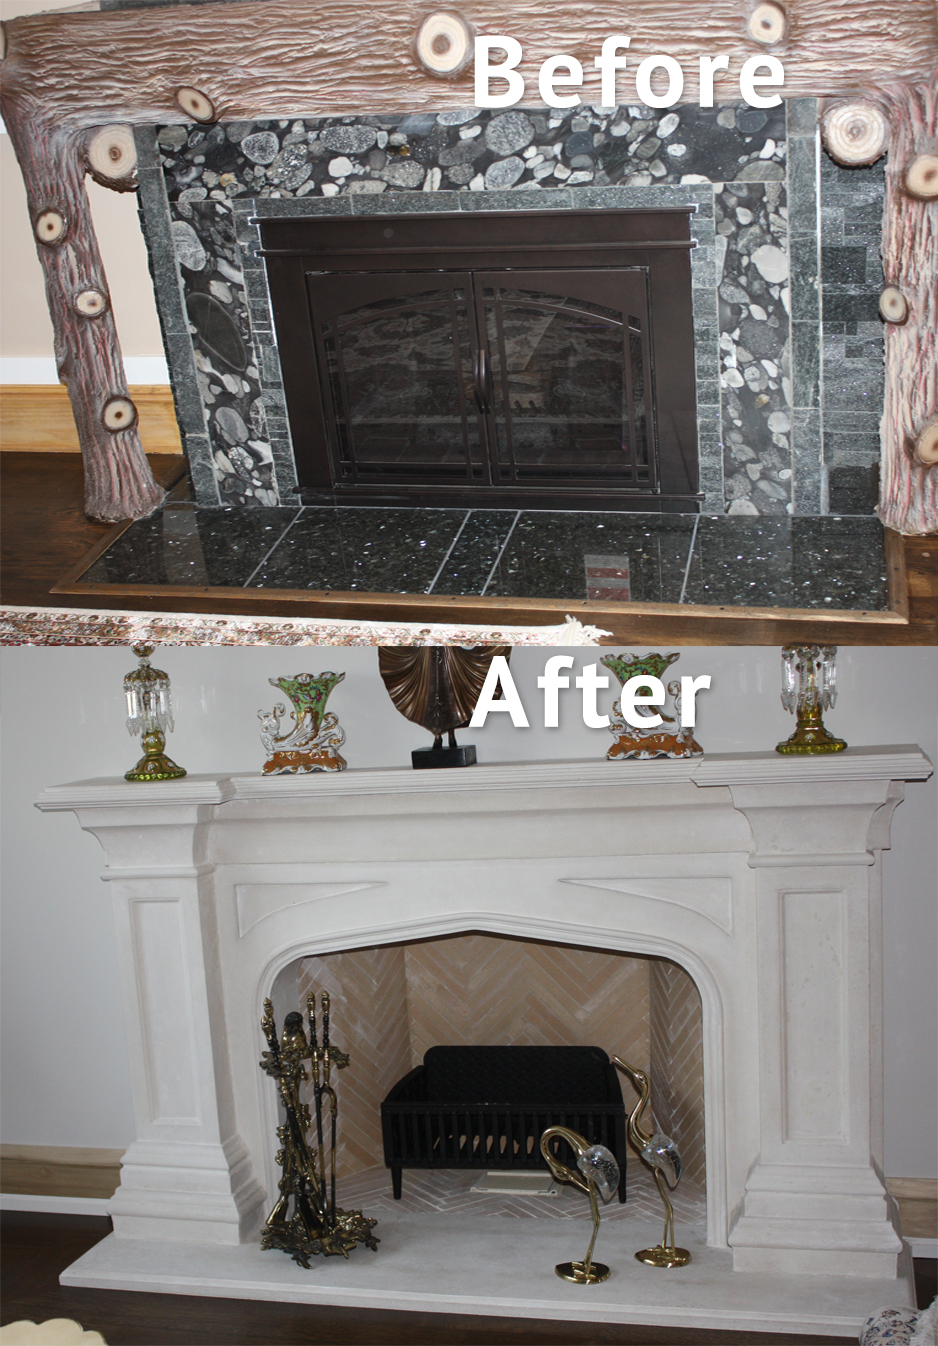 Custom Fireplace mantel, Architectural plaster moulding